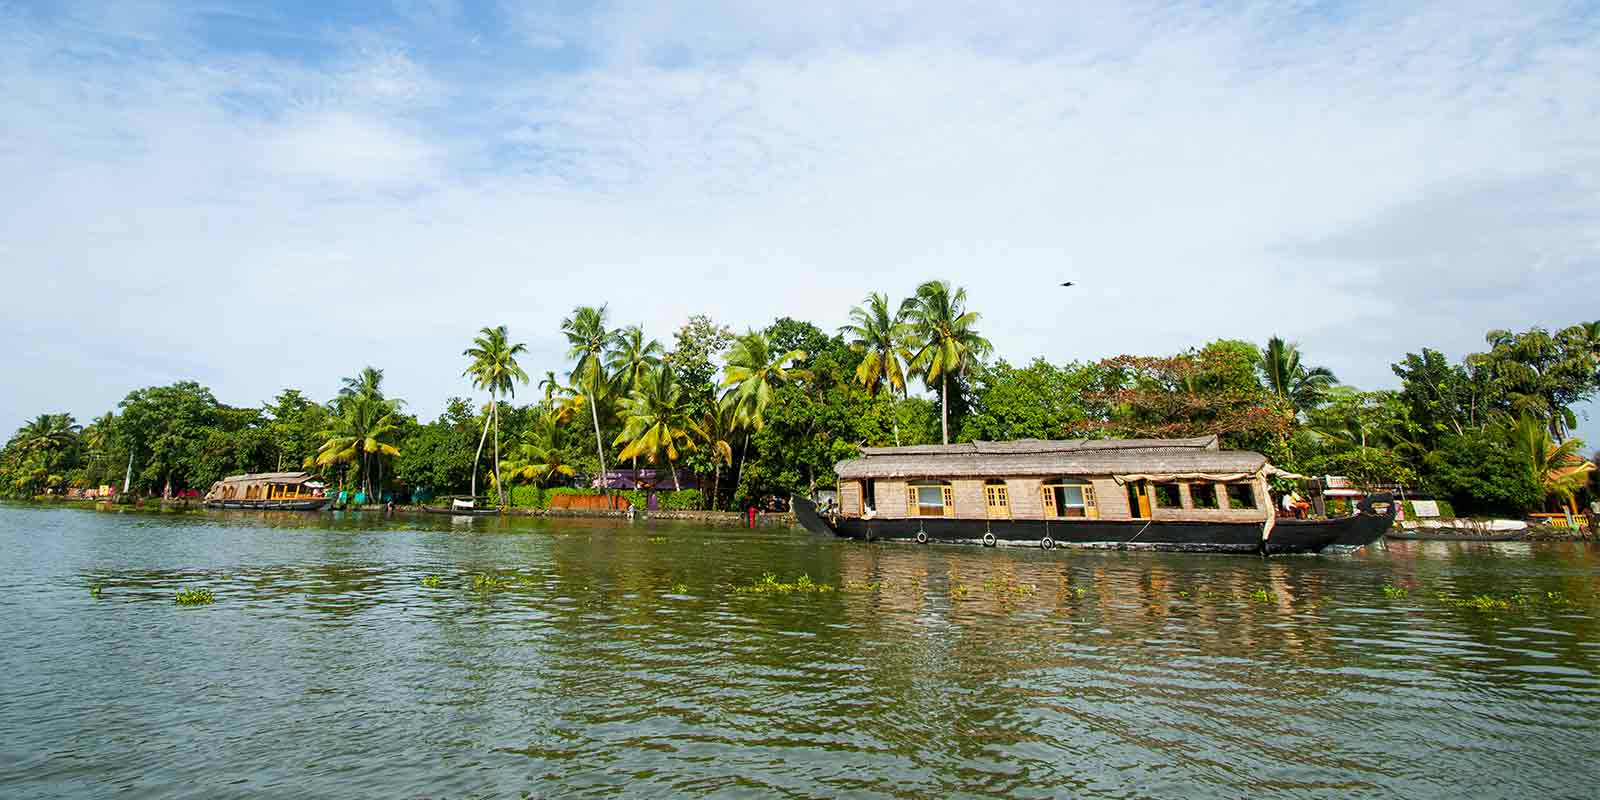 Traditional houseboat on the backwaters in Kerala, India